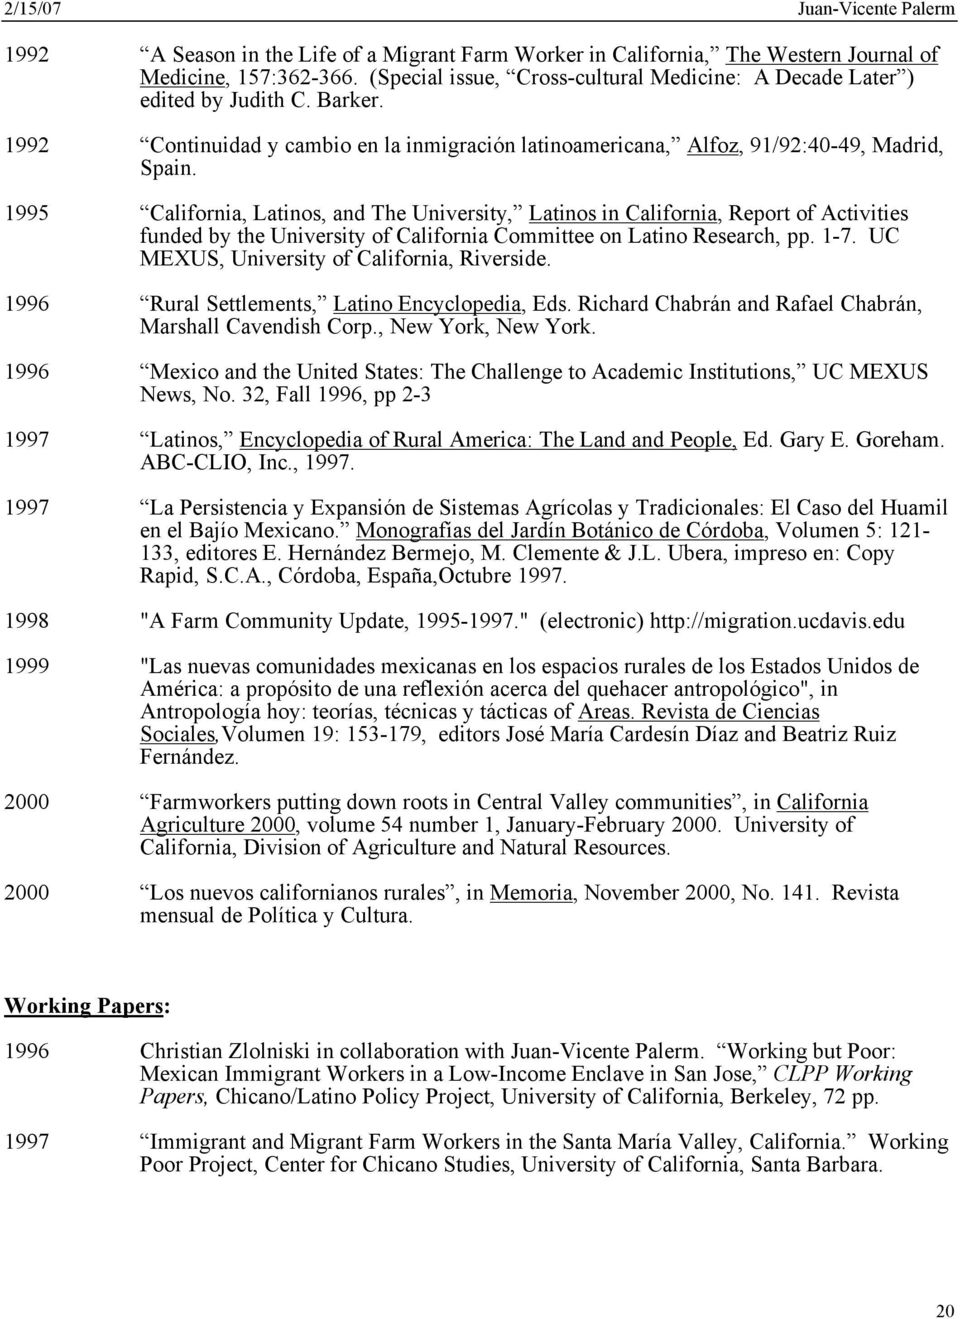 1995 California, Latinos, and The University, Latinos in California, Report of Activities funded by the University of California Committee on Latino Research, pp. 1-7.